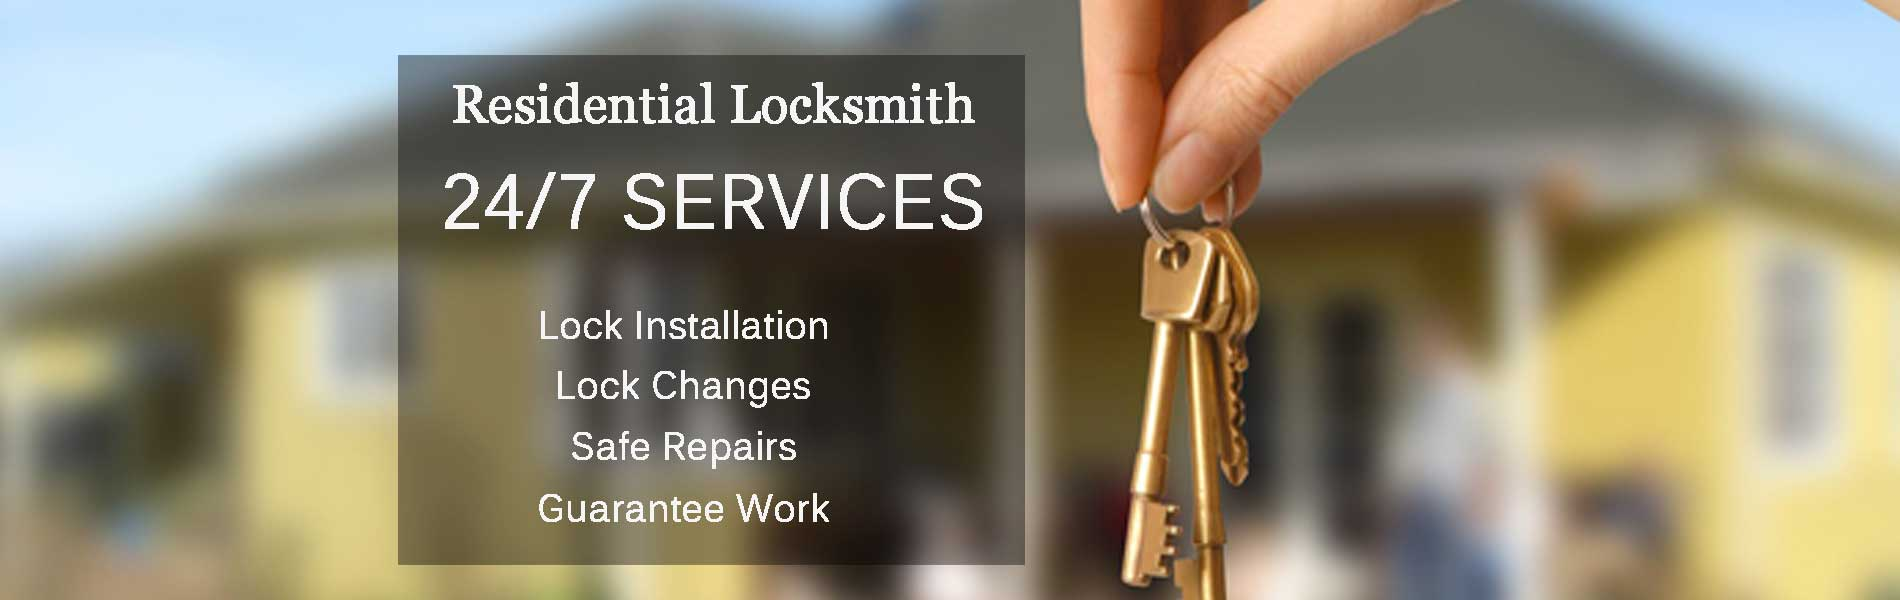 residential locksmith. Things To Check / Ask When You Calling Request A Locksmith Residential